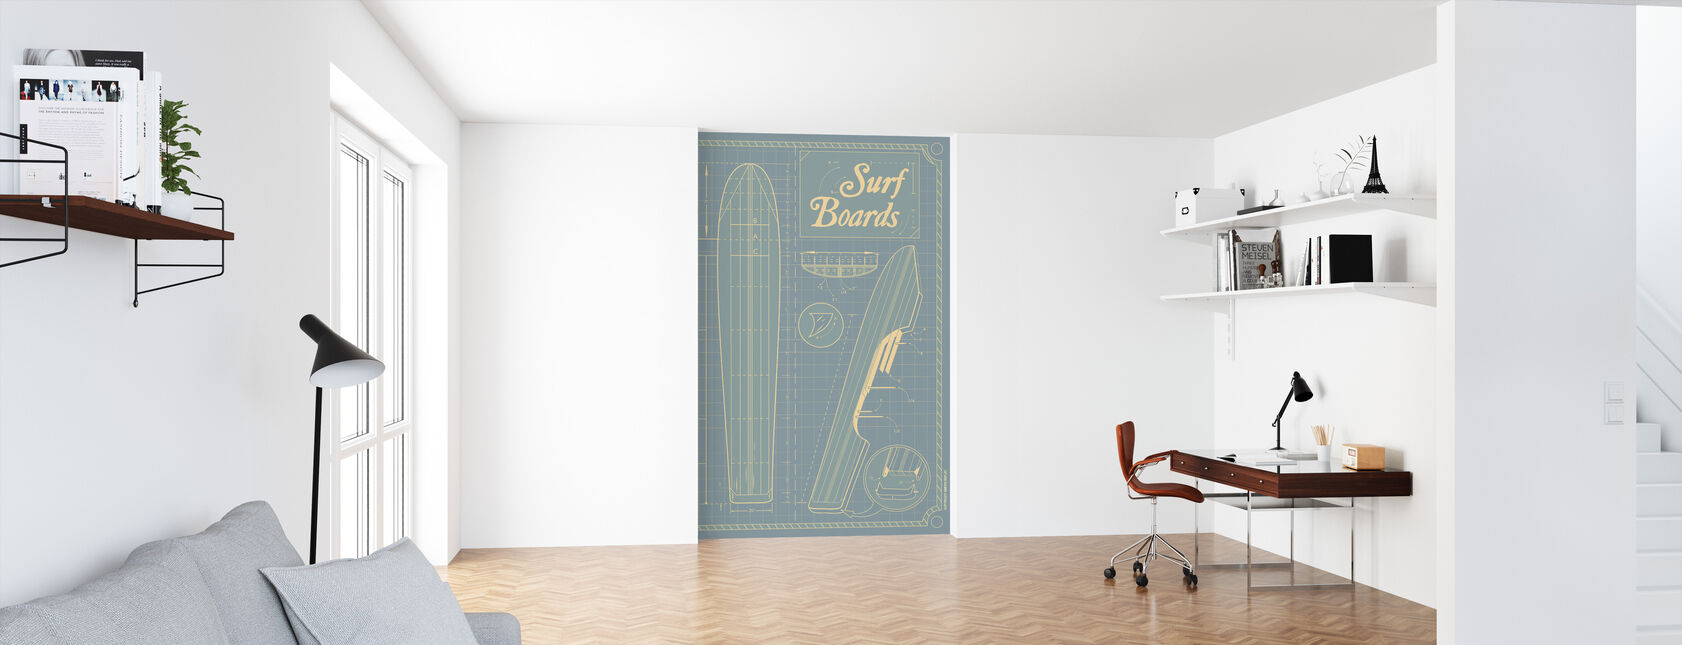 Surf Boards - Wallpaper - Office